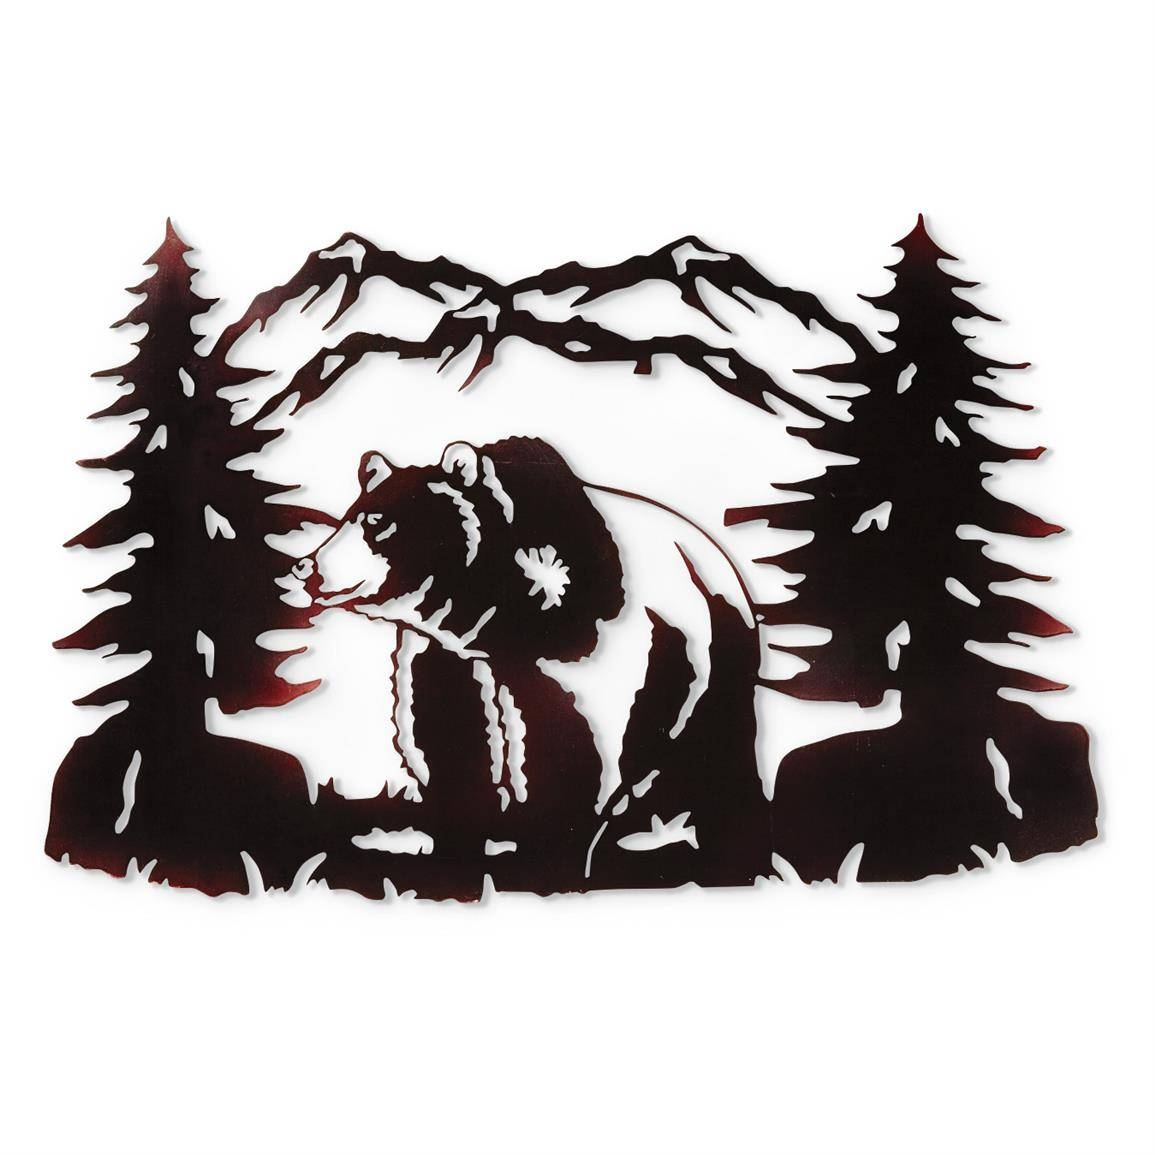 Bear Metal Wall Art – 648669, Wall Art At Sportsman's Guide In Current Wildlife Metal Wall Art (View 3 of 20)